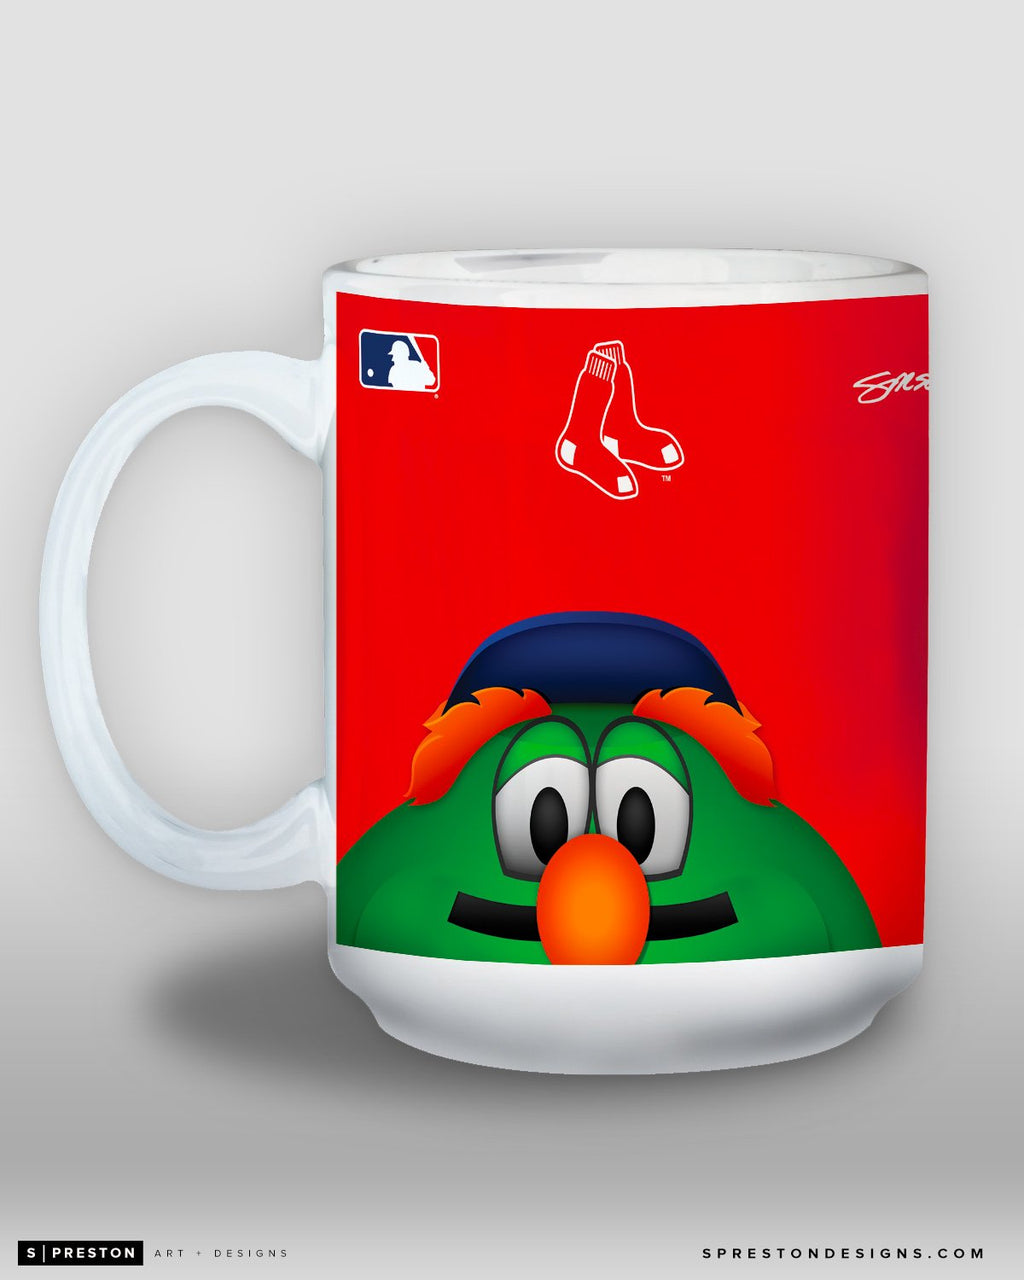 Minimalist Wally The Green Monster Coffee Mug - MLB Licensed - Boston Red Sox Mascot